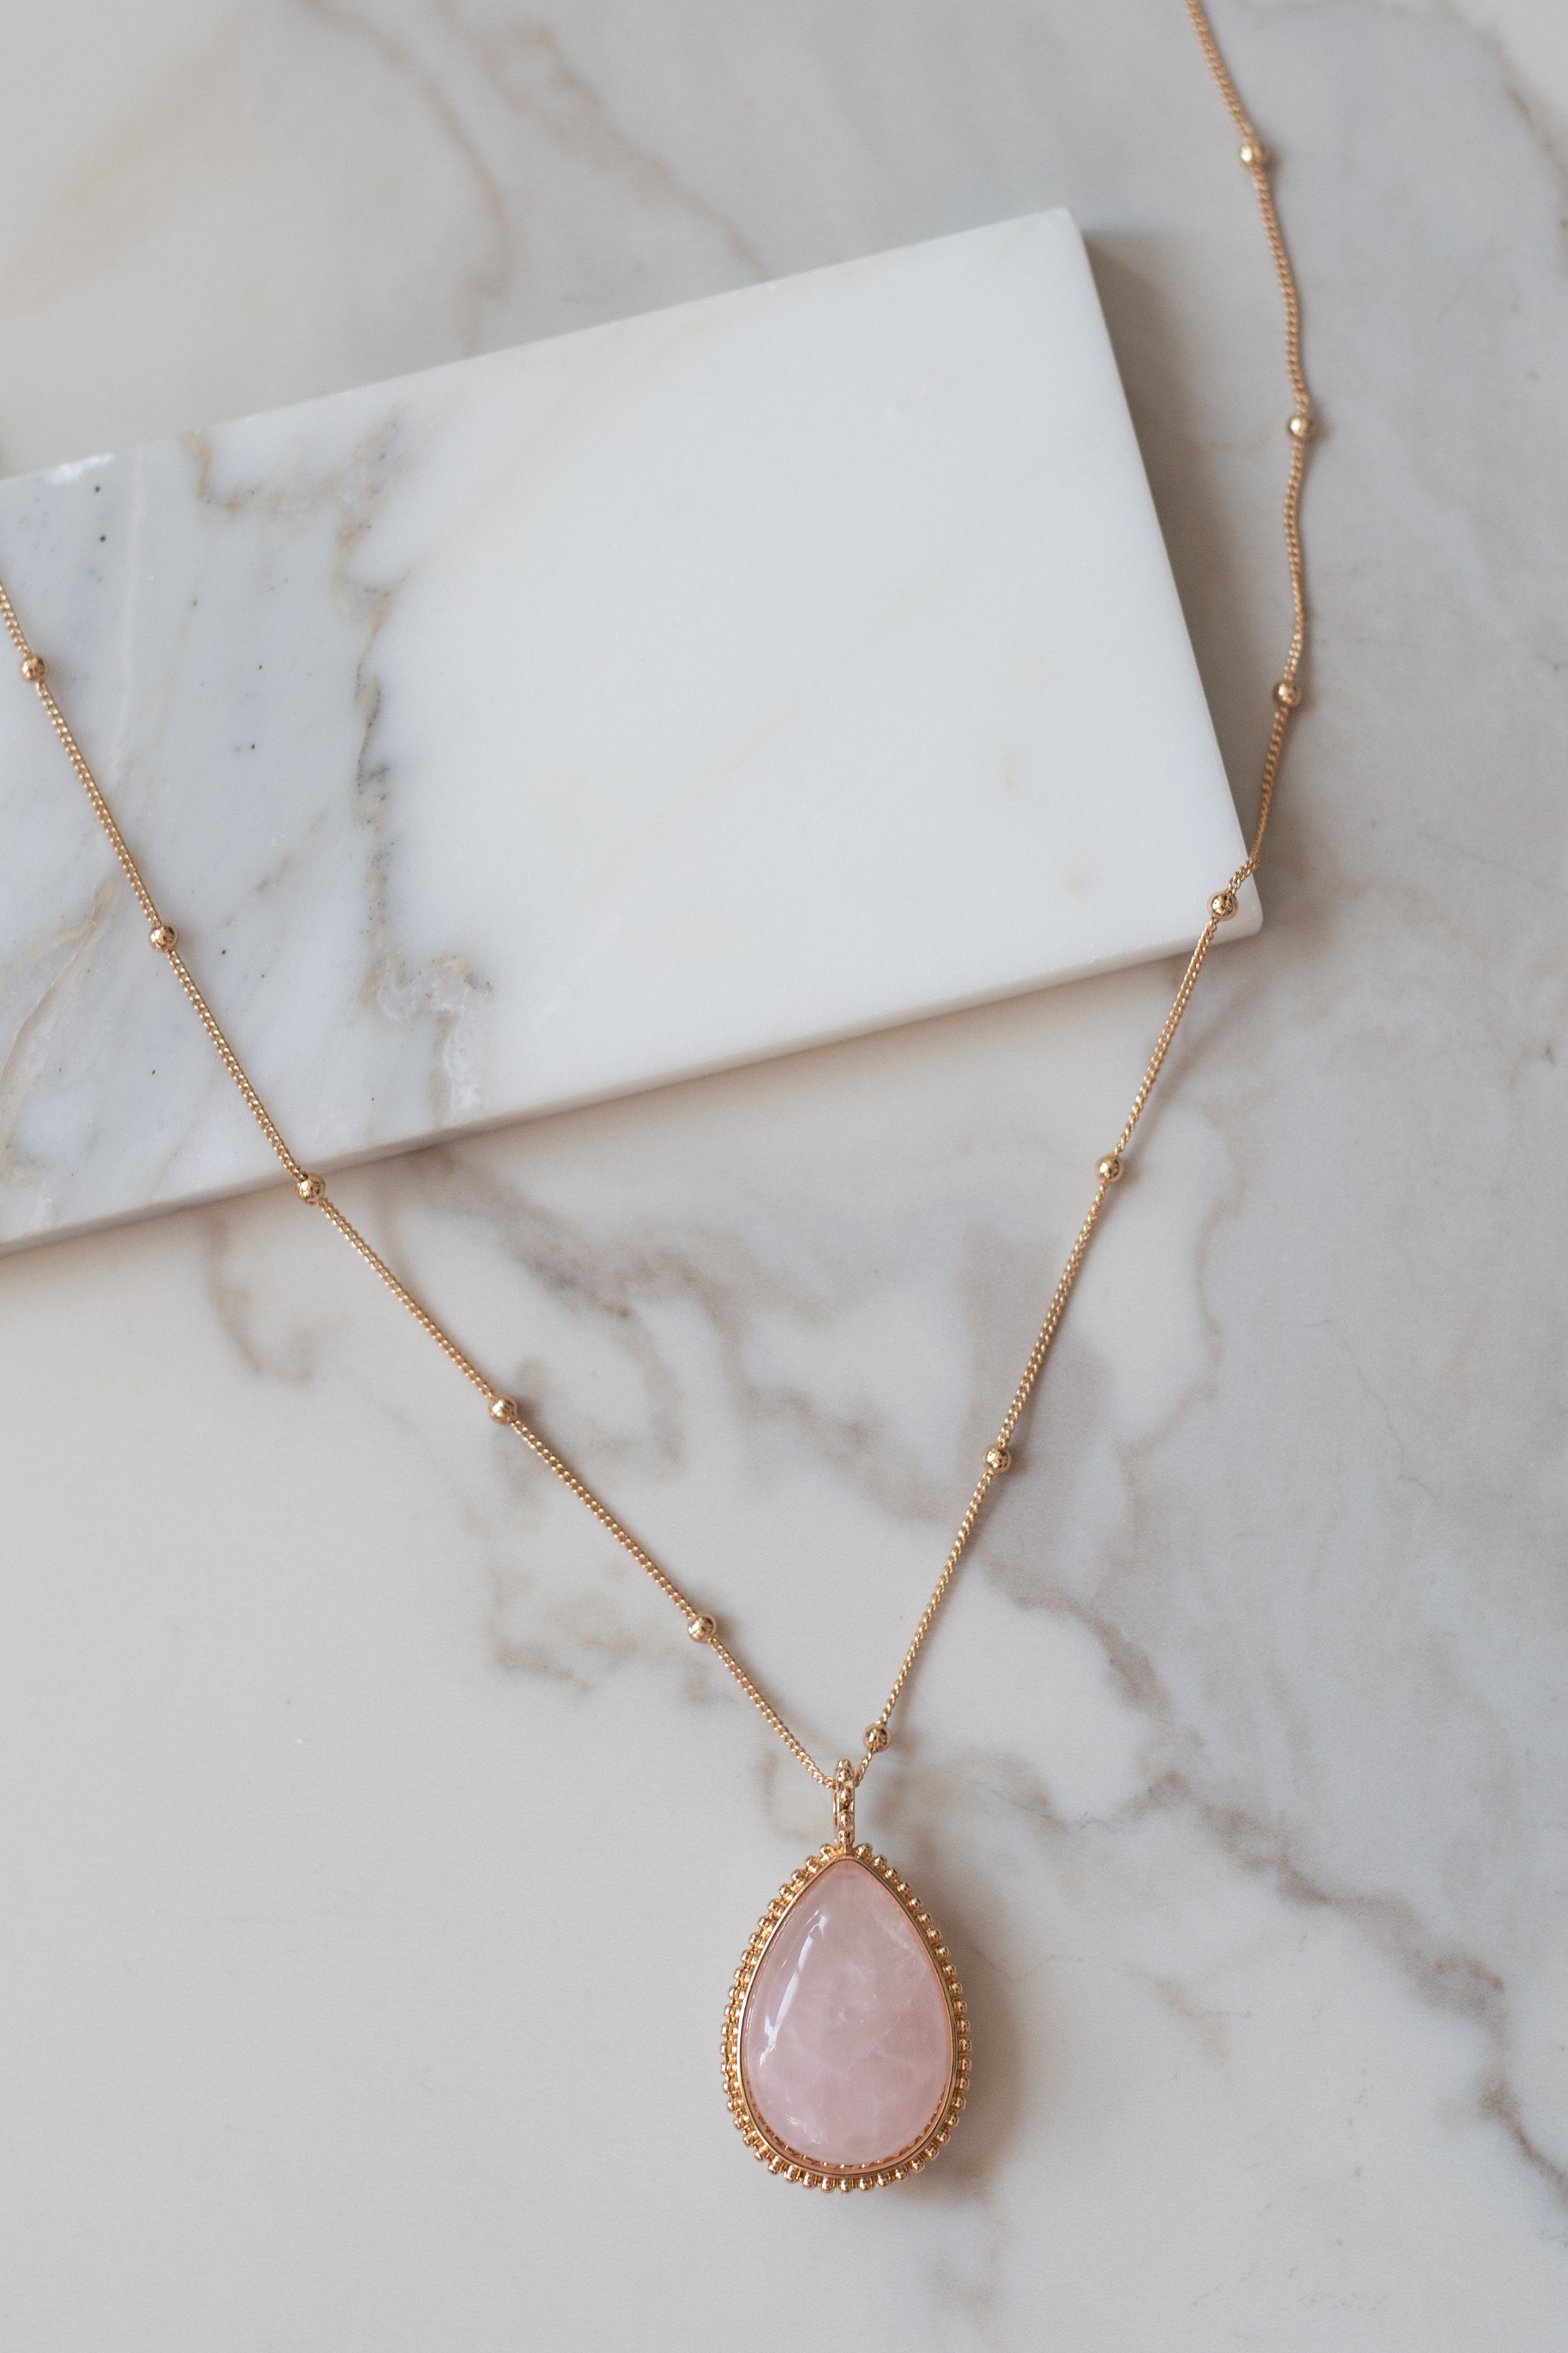 Gold Long Necklace with Marbled Blush Stone Pendant